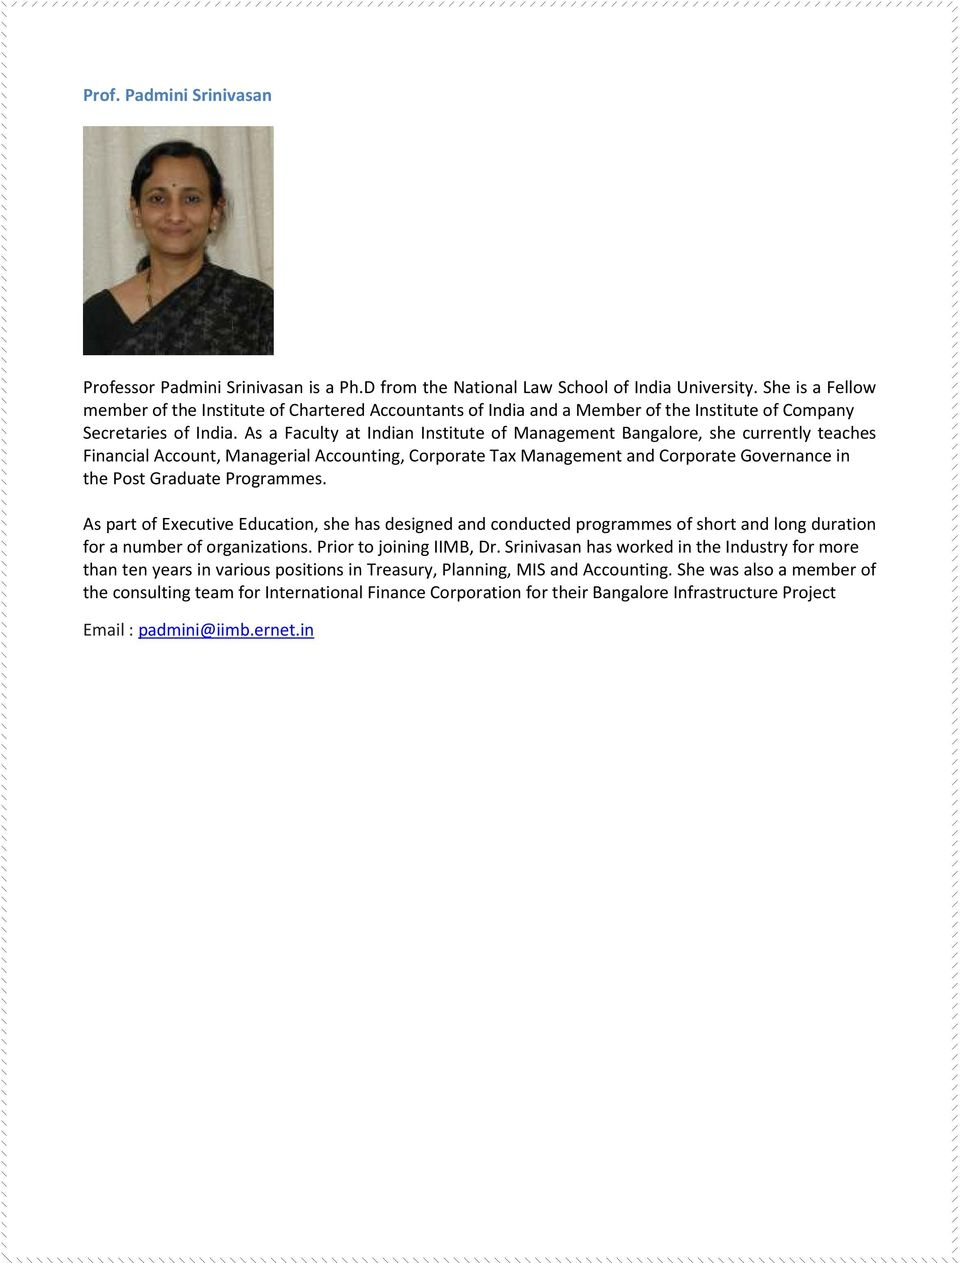 As a Faculty at Indian Institute of Management Bangalore, she currently teaches Financial Account, Managerial Accounting, Corporate Tax Management and Corporate Governance in the Post Graduate